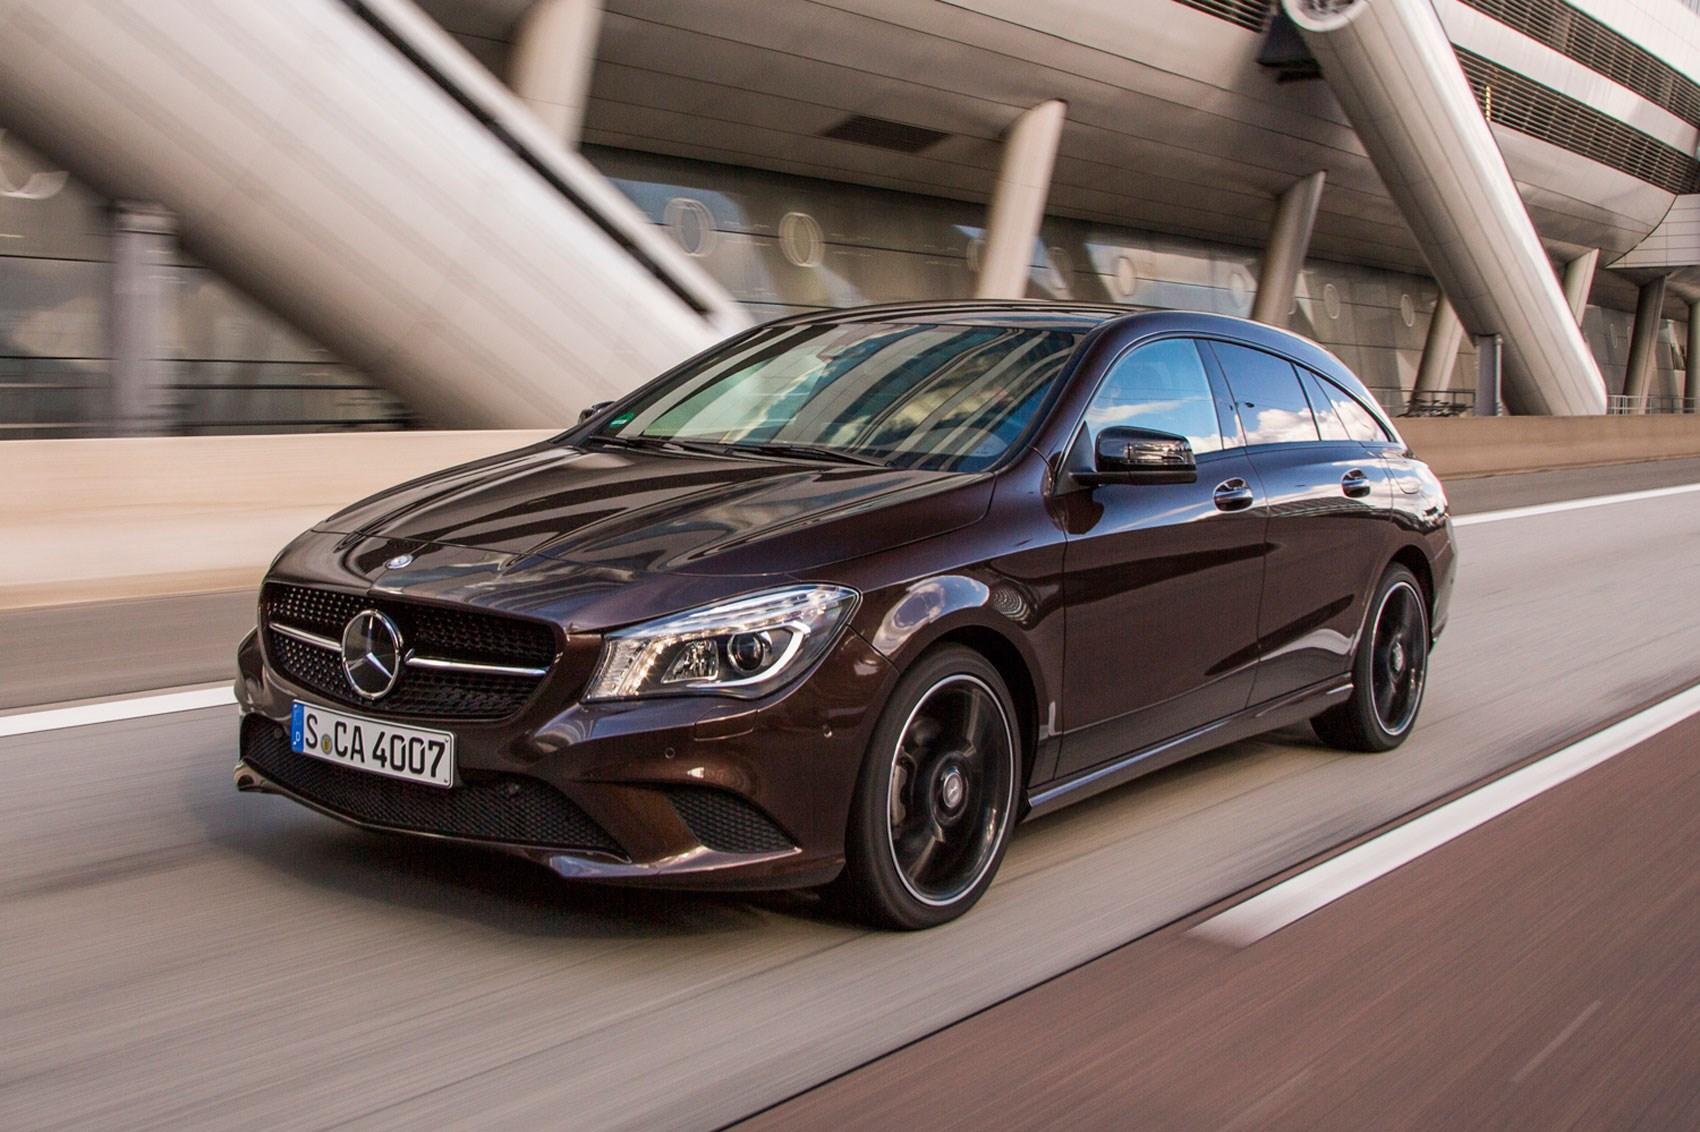 2018 Mercedes Cla 250 4matic Review 2018 Cars Models